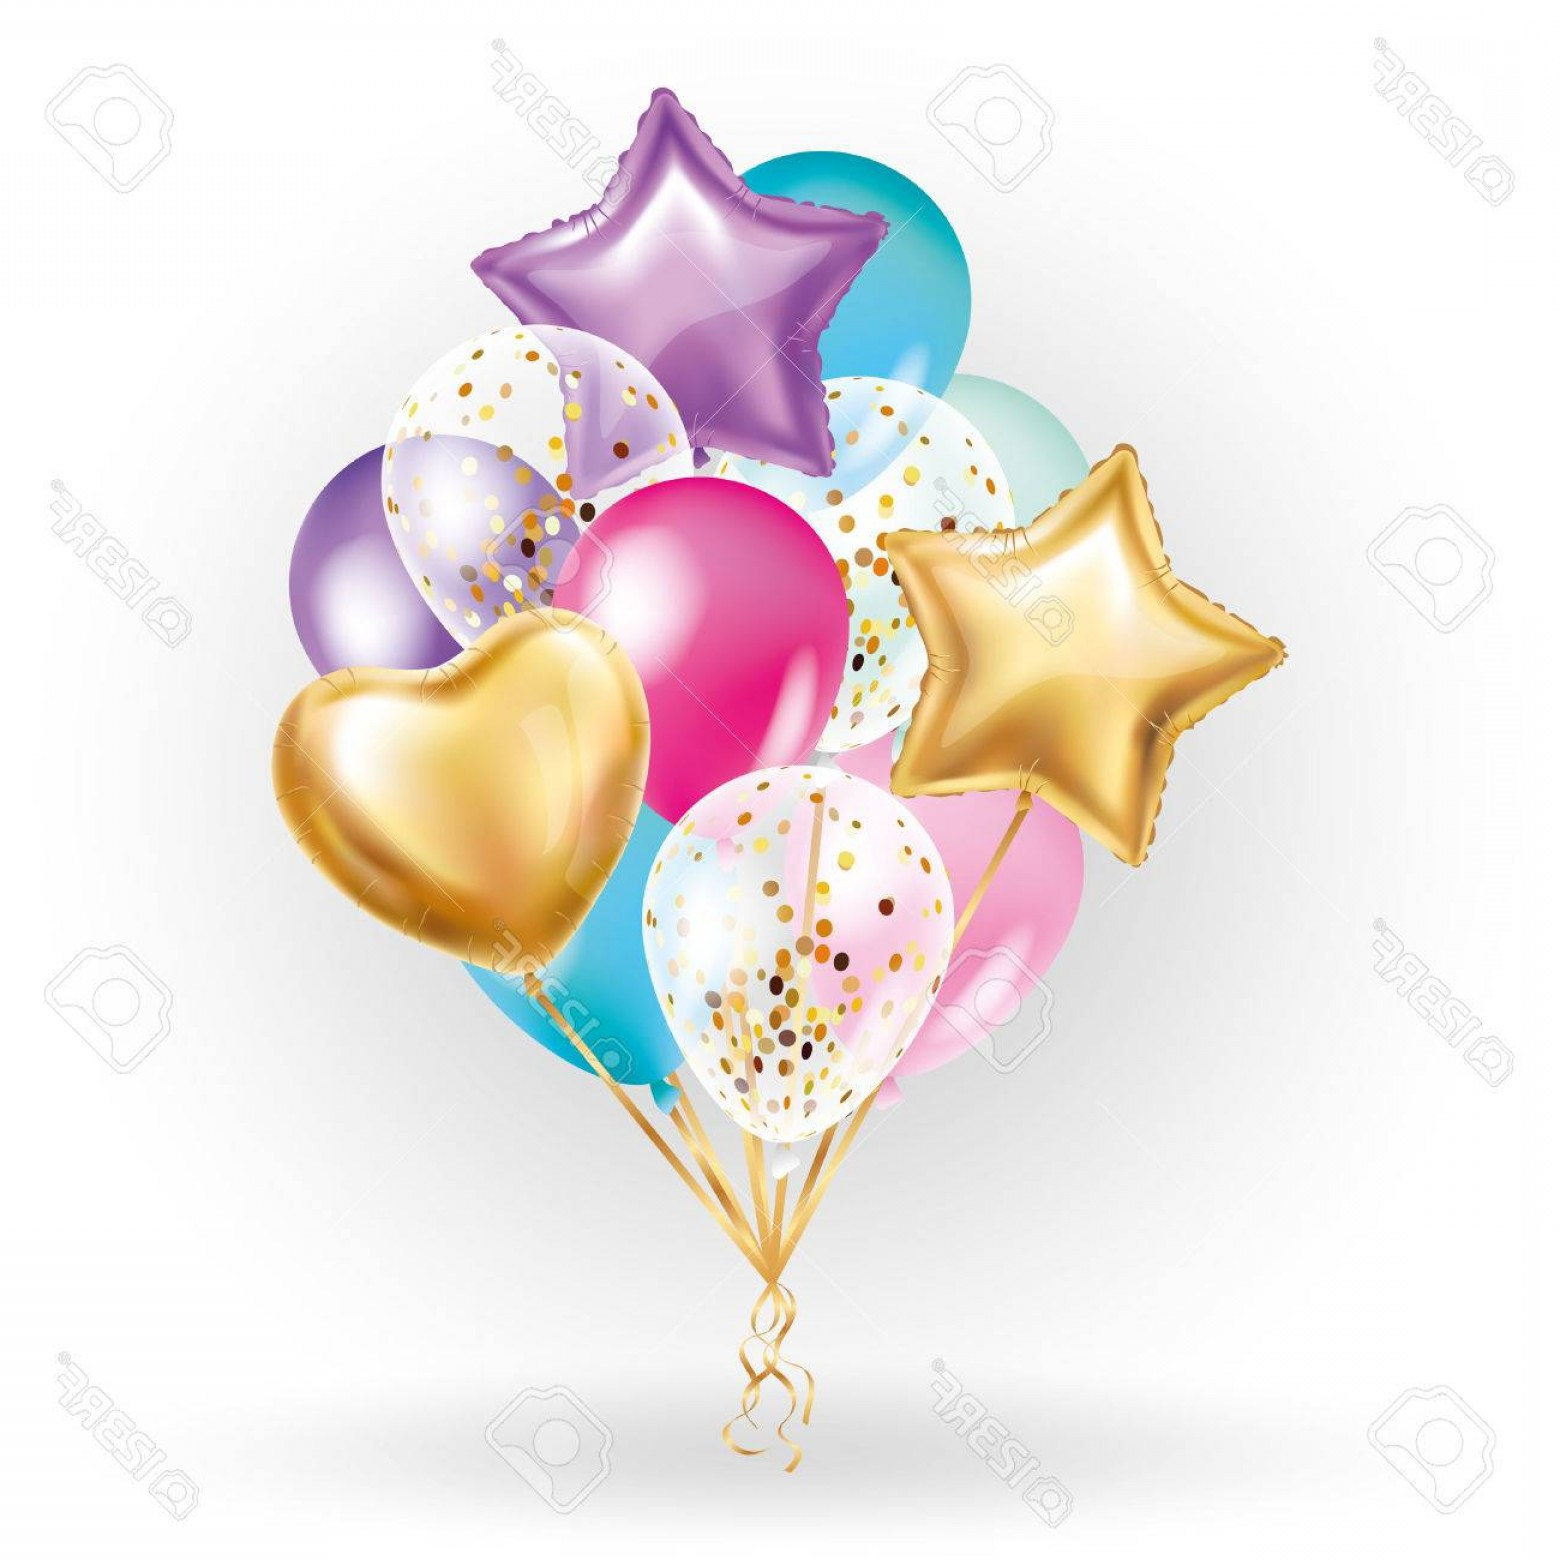 Vectors Heart And Star: Photostock Vector Heart Star Gold Balloon Bouquet Frosted Party Balloons Event Design Balloons Isolated In The Air Par